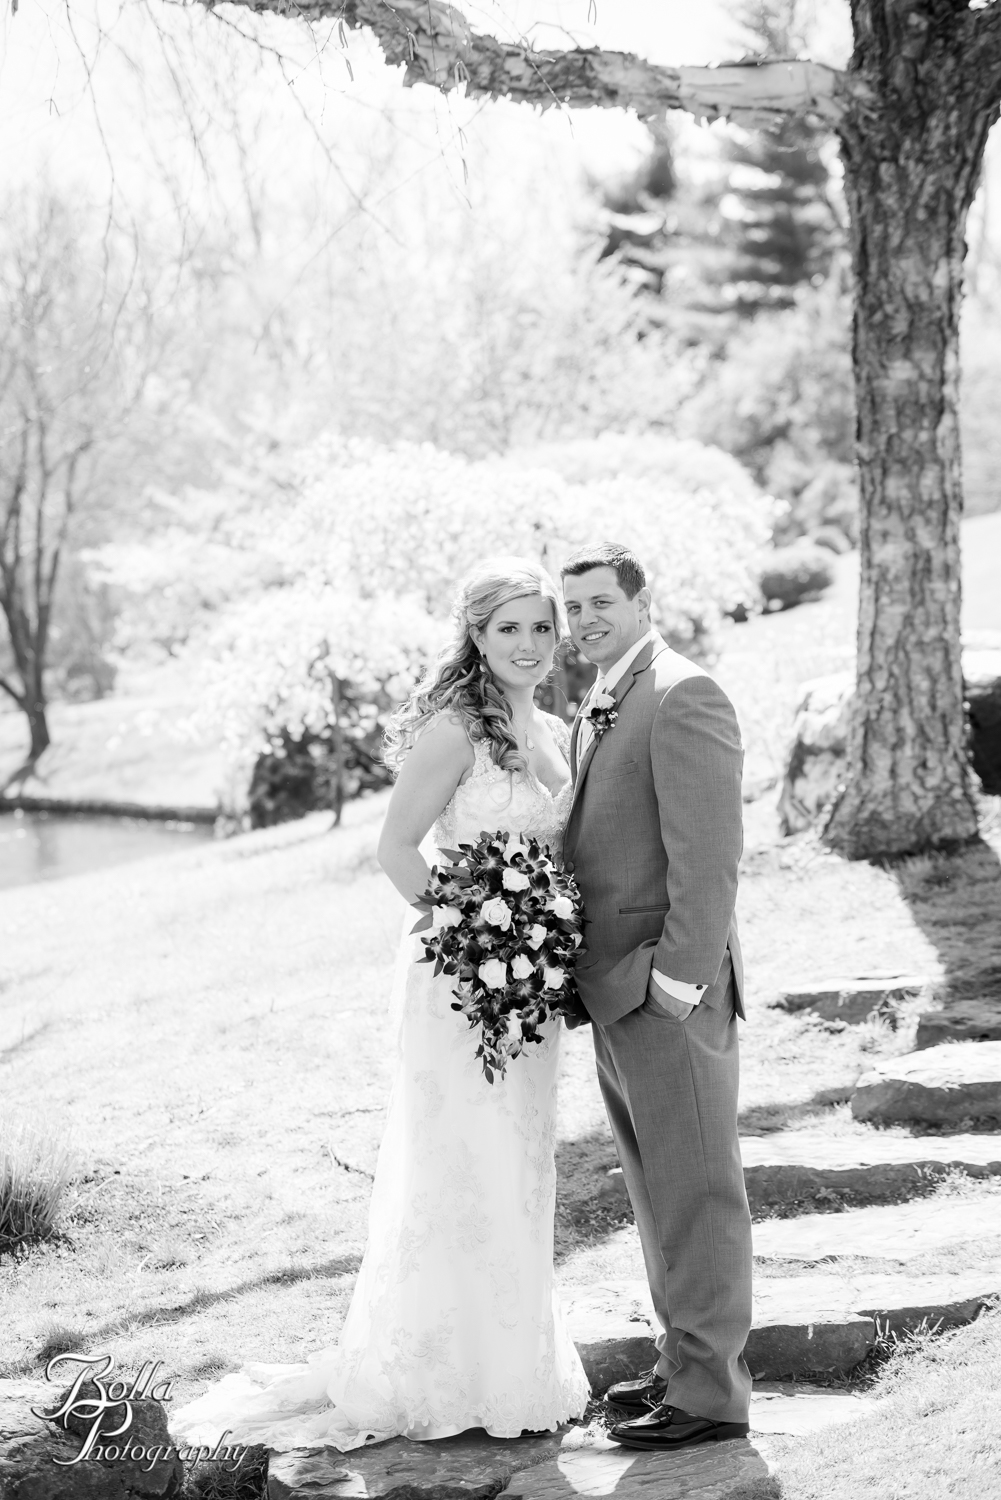 Bolla_Photography_St_Louis_wedding_photographer_Morgando_Blues_hockey_Botanical_Gardens_spring-0005-2.jpg